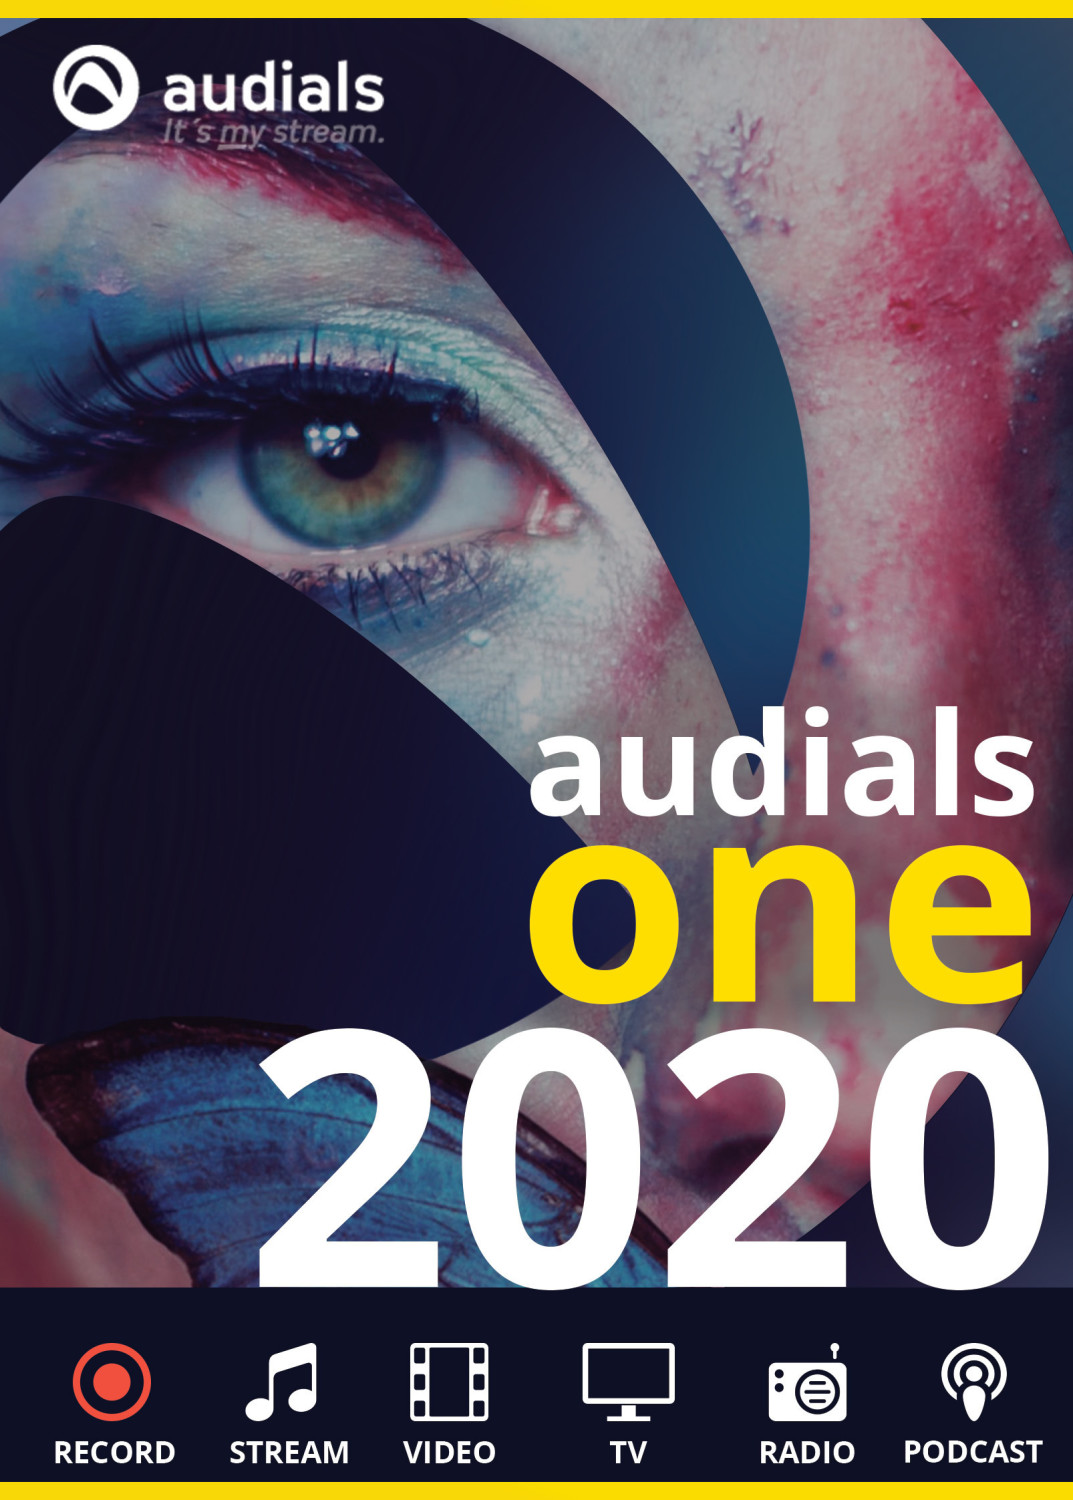 Image of Audials One 2020